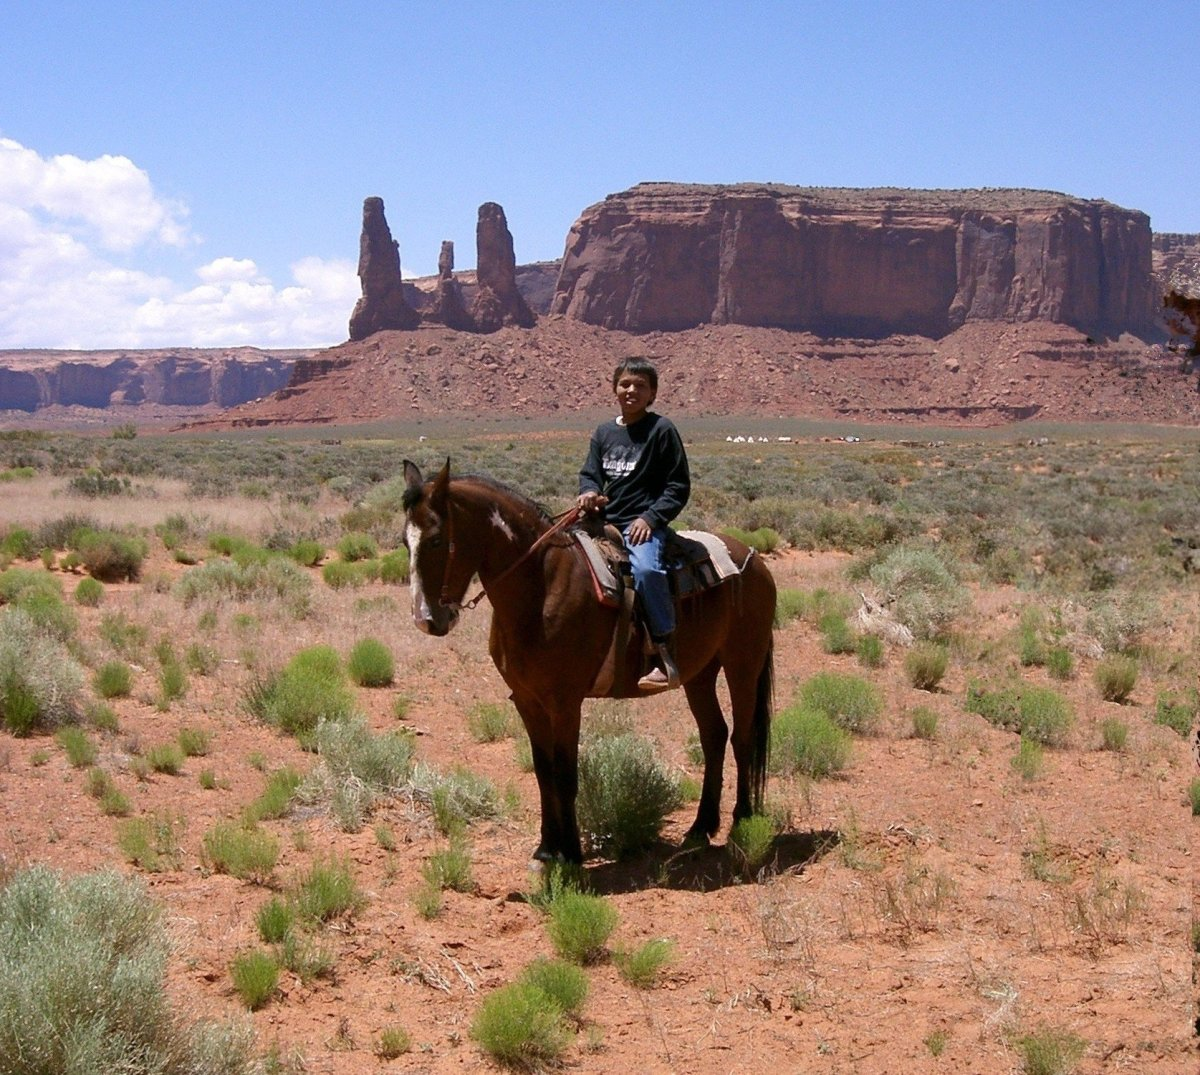 Navajo Boy in Monument Valley, Arizona, 2007